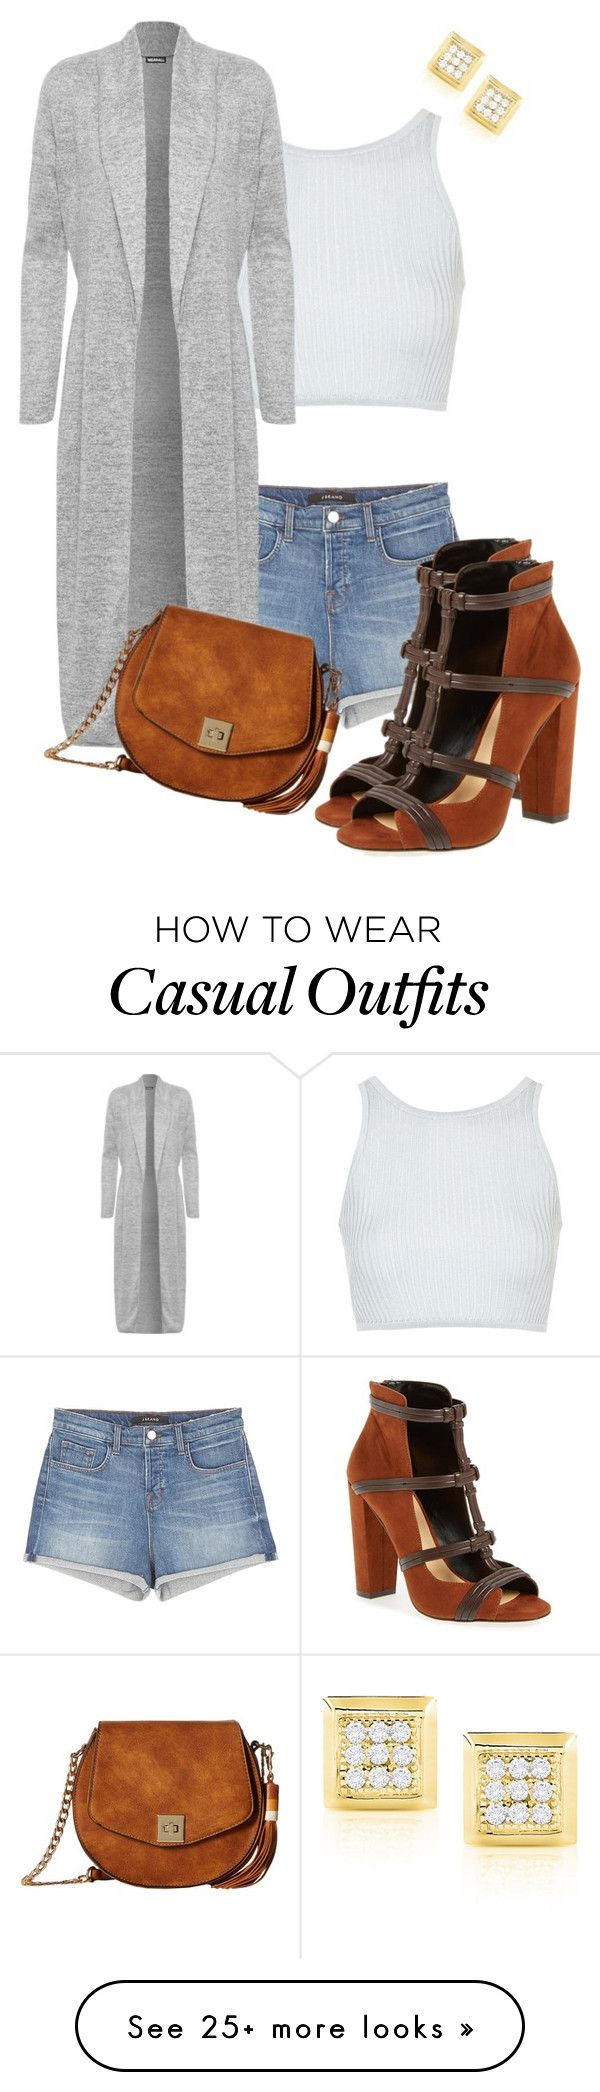 """""""Casual"""" by kmariefashion on Polyvore featuring J Brand, Daya, Topshop, WearAll and Gabriella Rocha"""